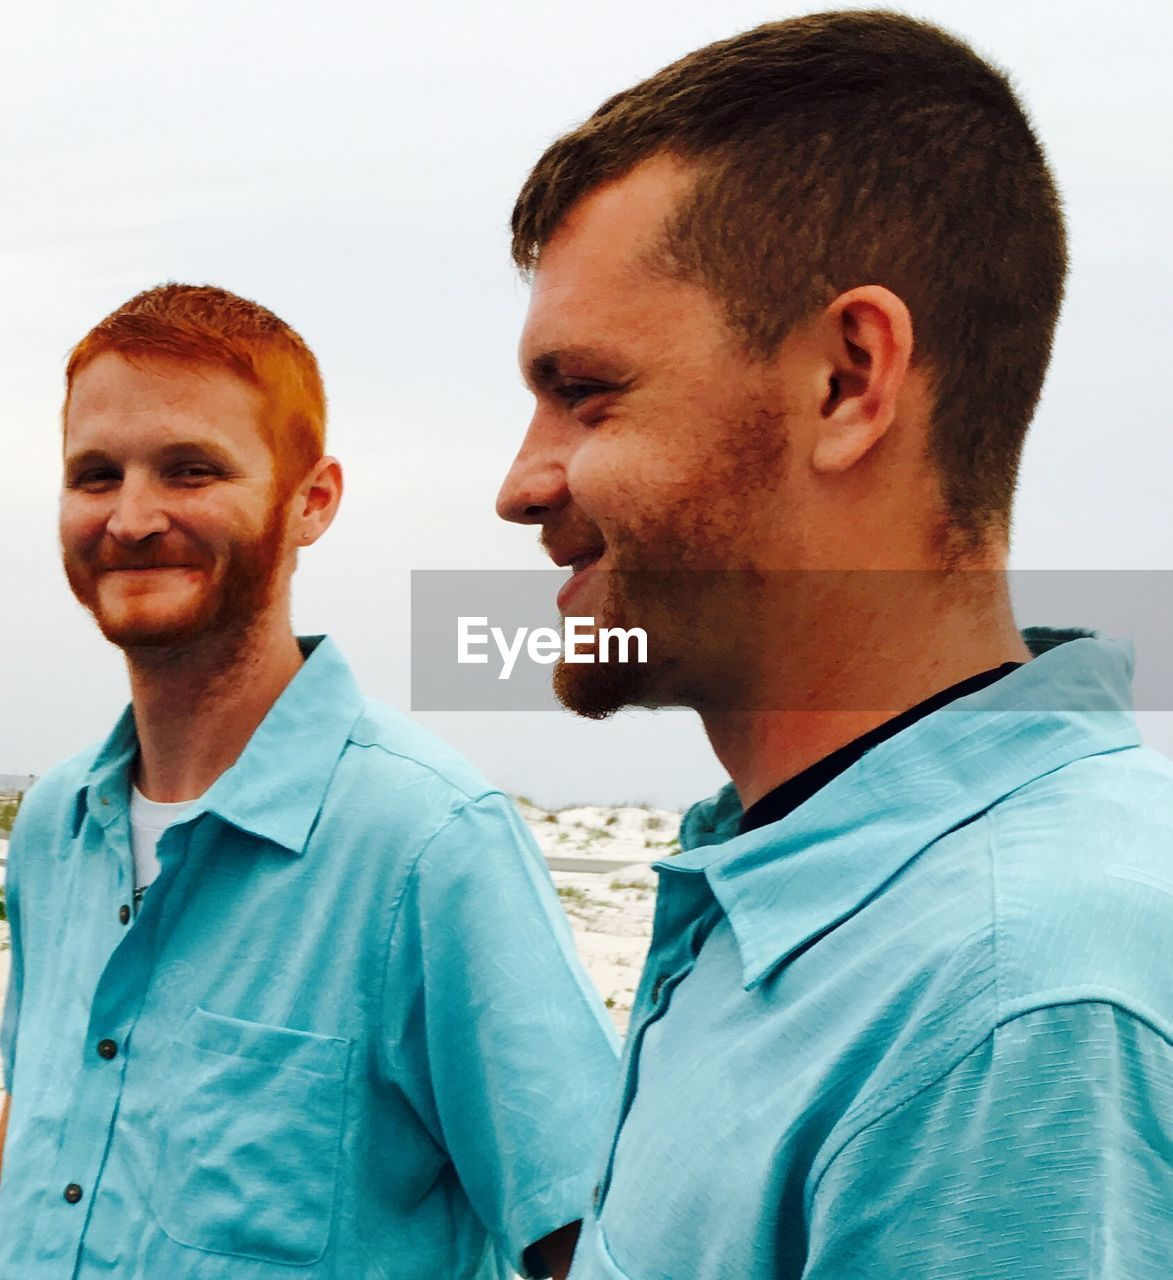 Friends wearing blue shirts standing against sky